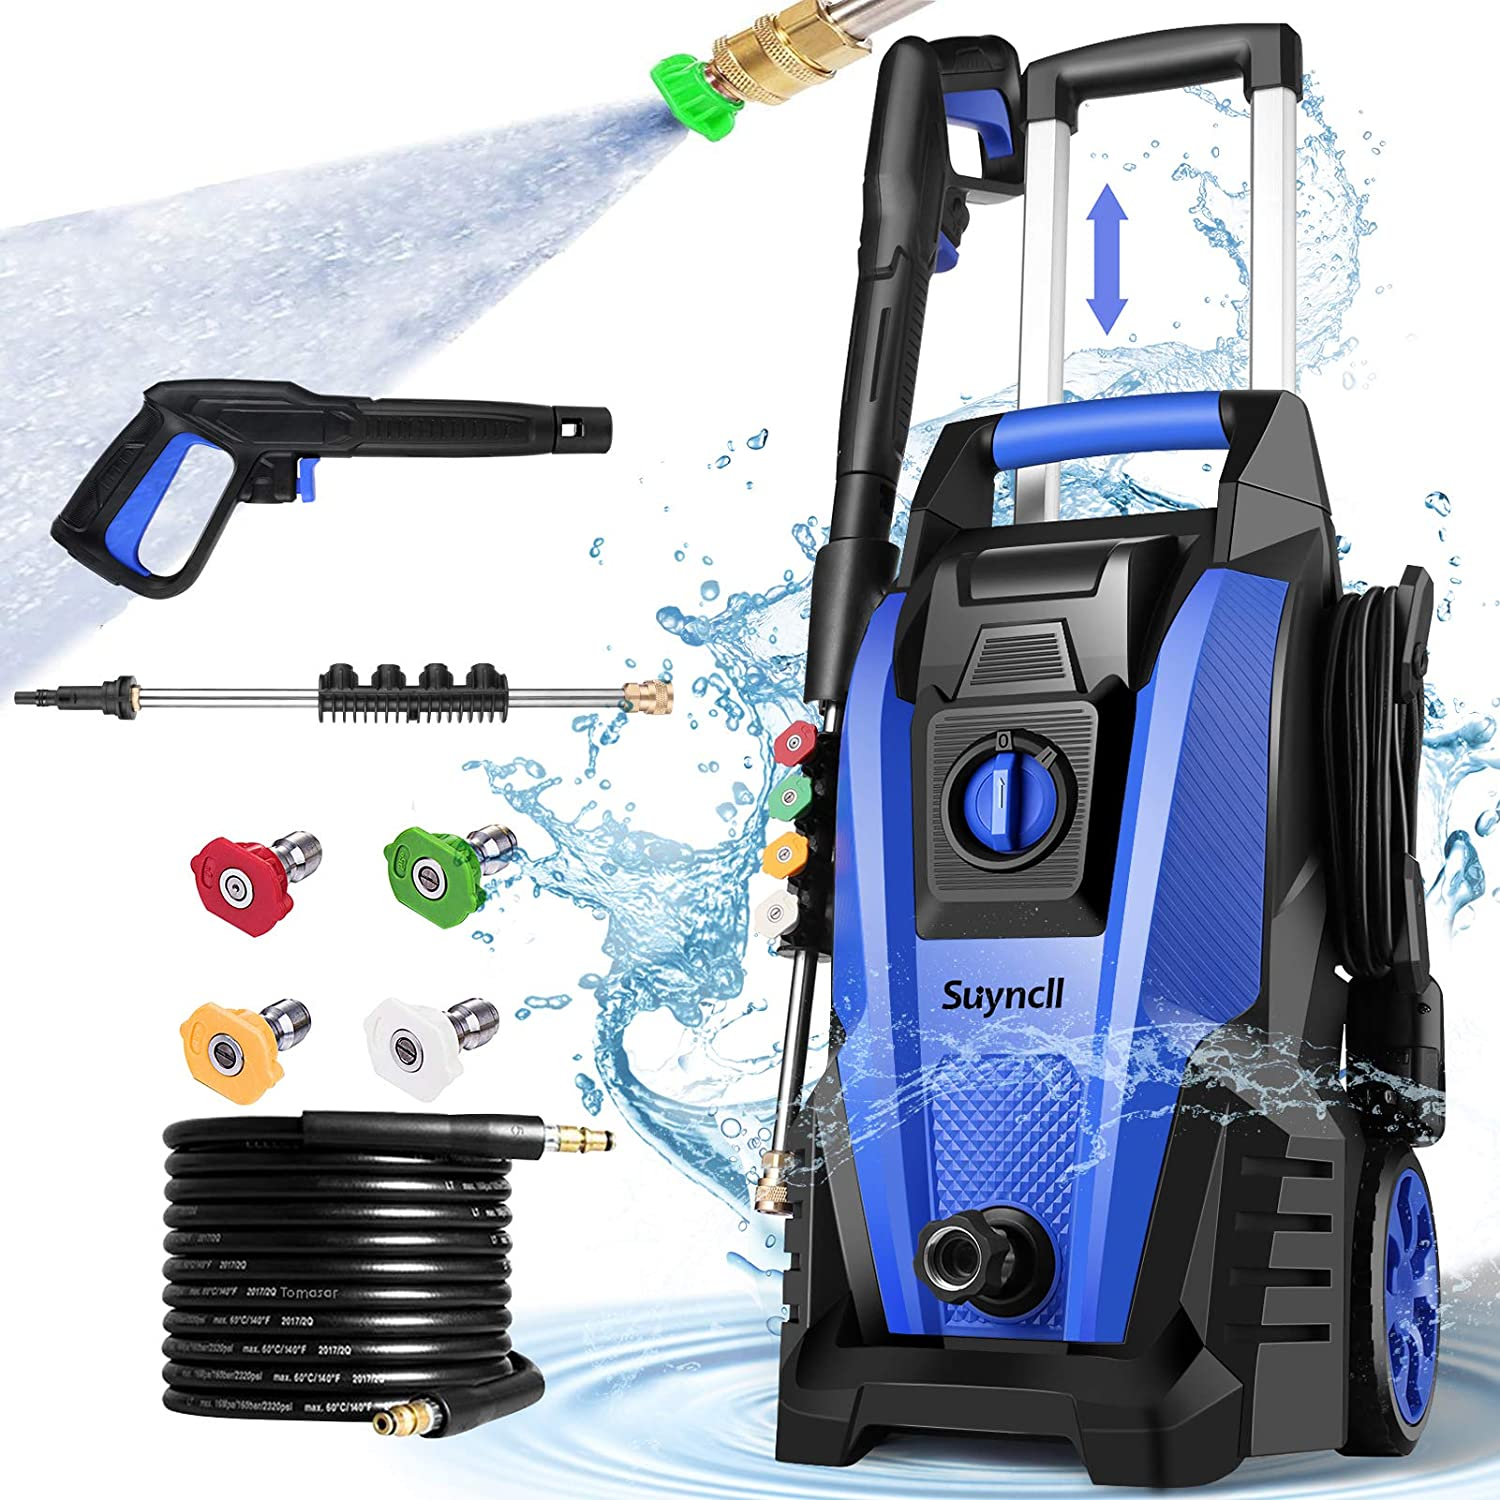 Suyncll Pressure Washer, 3800PSI Electric Power Washer